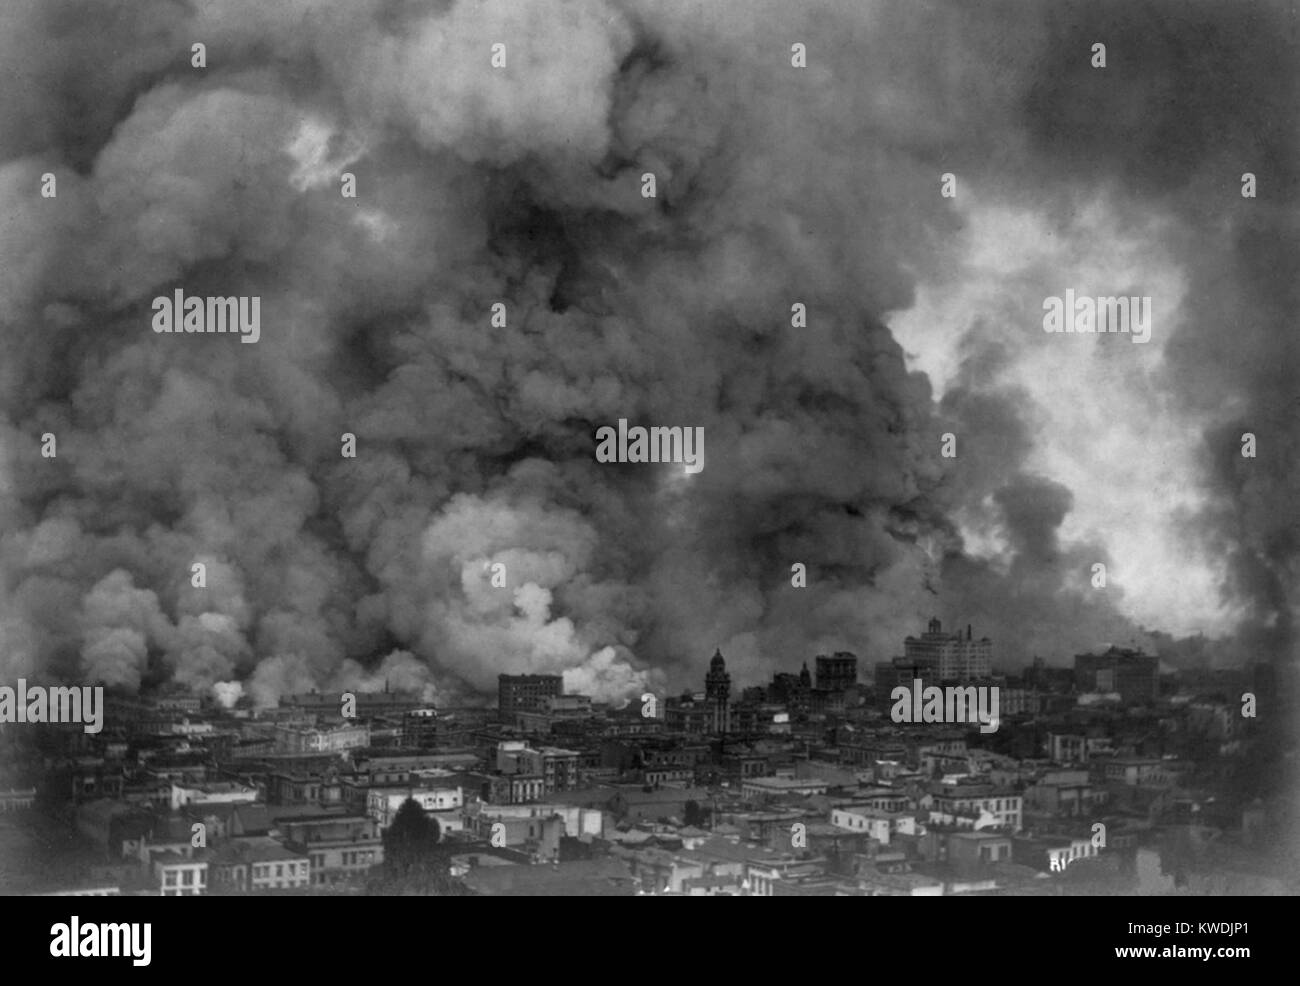 San Francisco in flames after April 18, 1906 earthquake. Within three days, fires caused by ruptured gas mains, - Stock Image